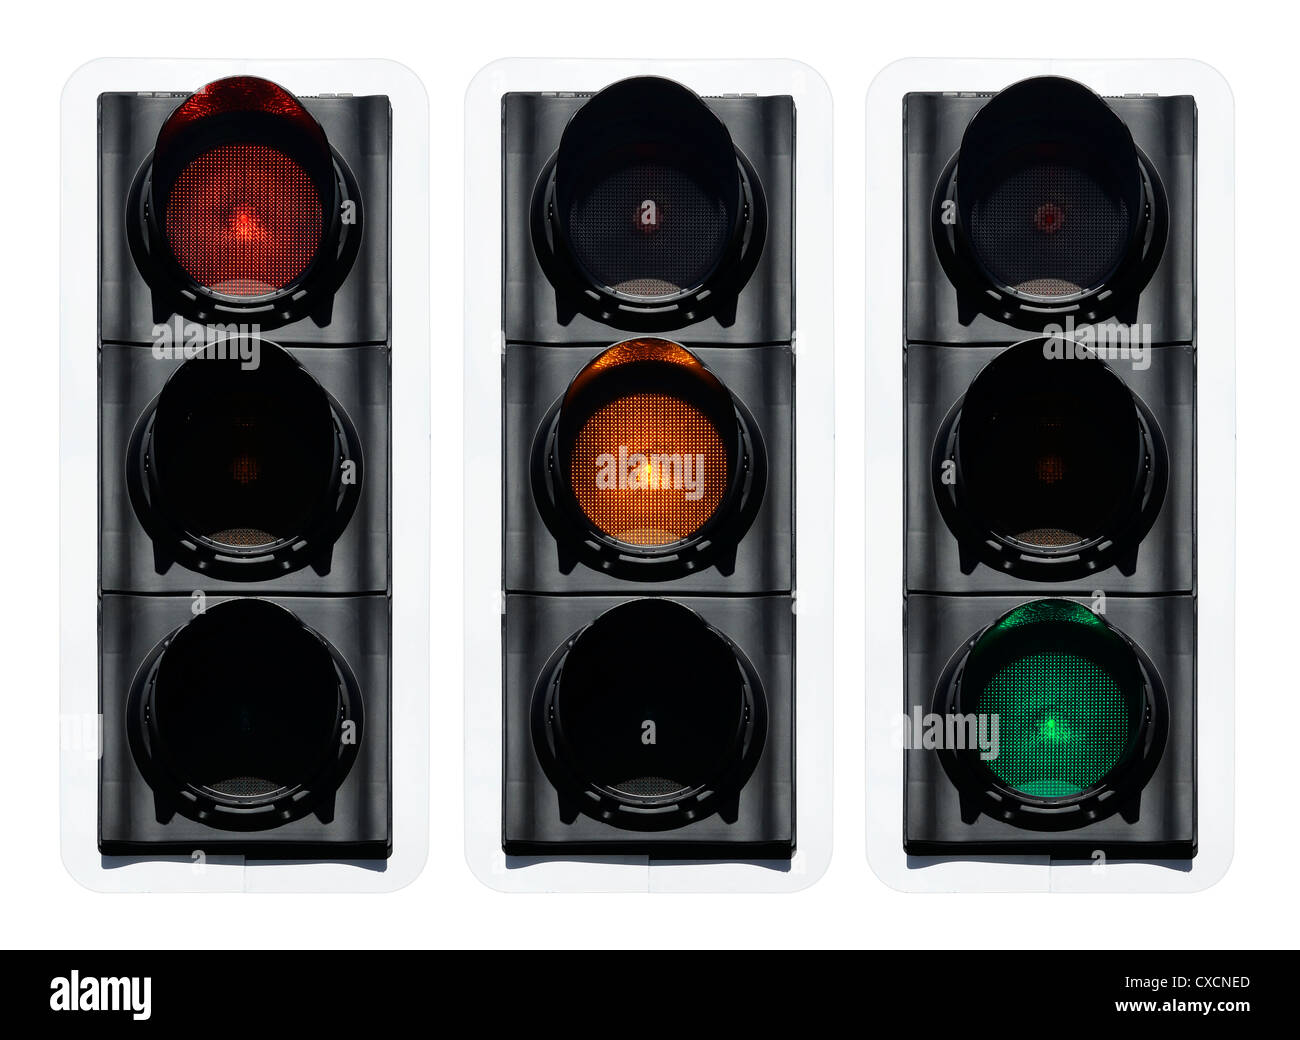 Red Amber Green traffic light - Stock Image